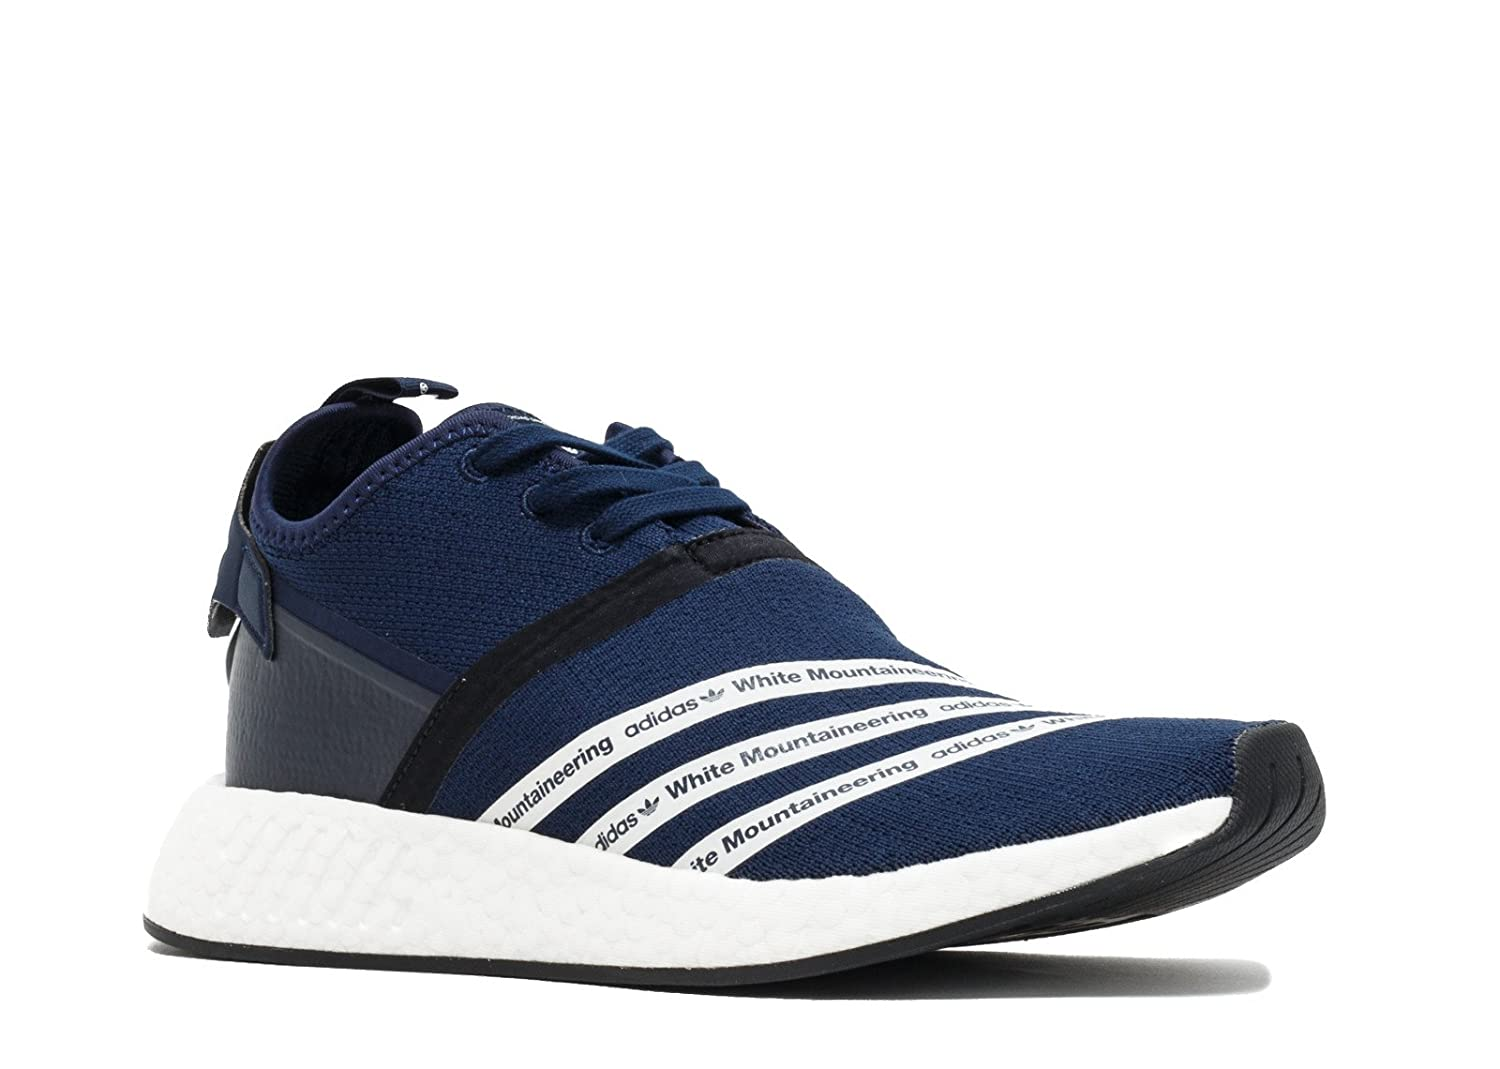 buy online d44a9 c9991 Amazon.com | Adidas Mens WM NMD R2 PK White Mountaineering ...